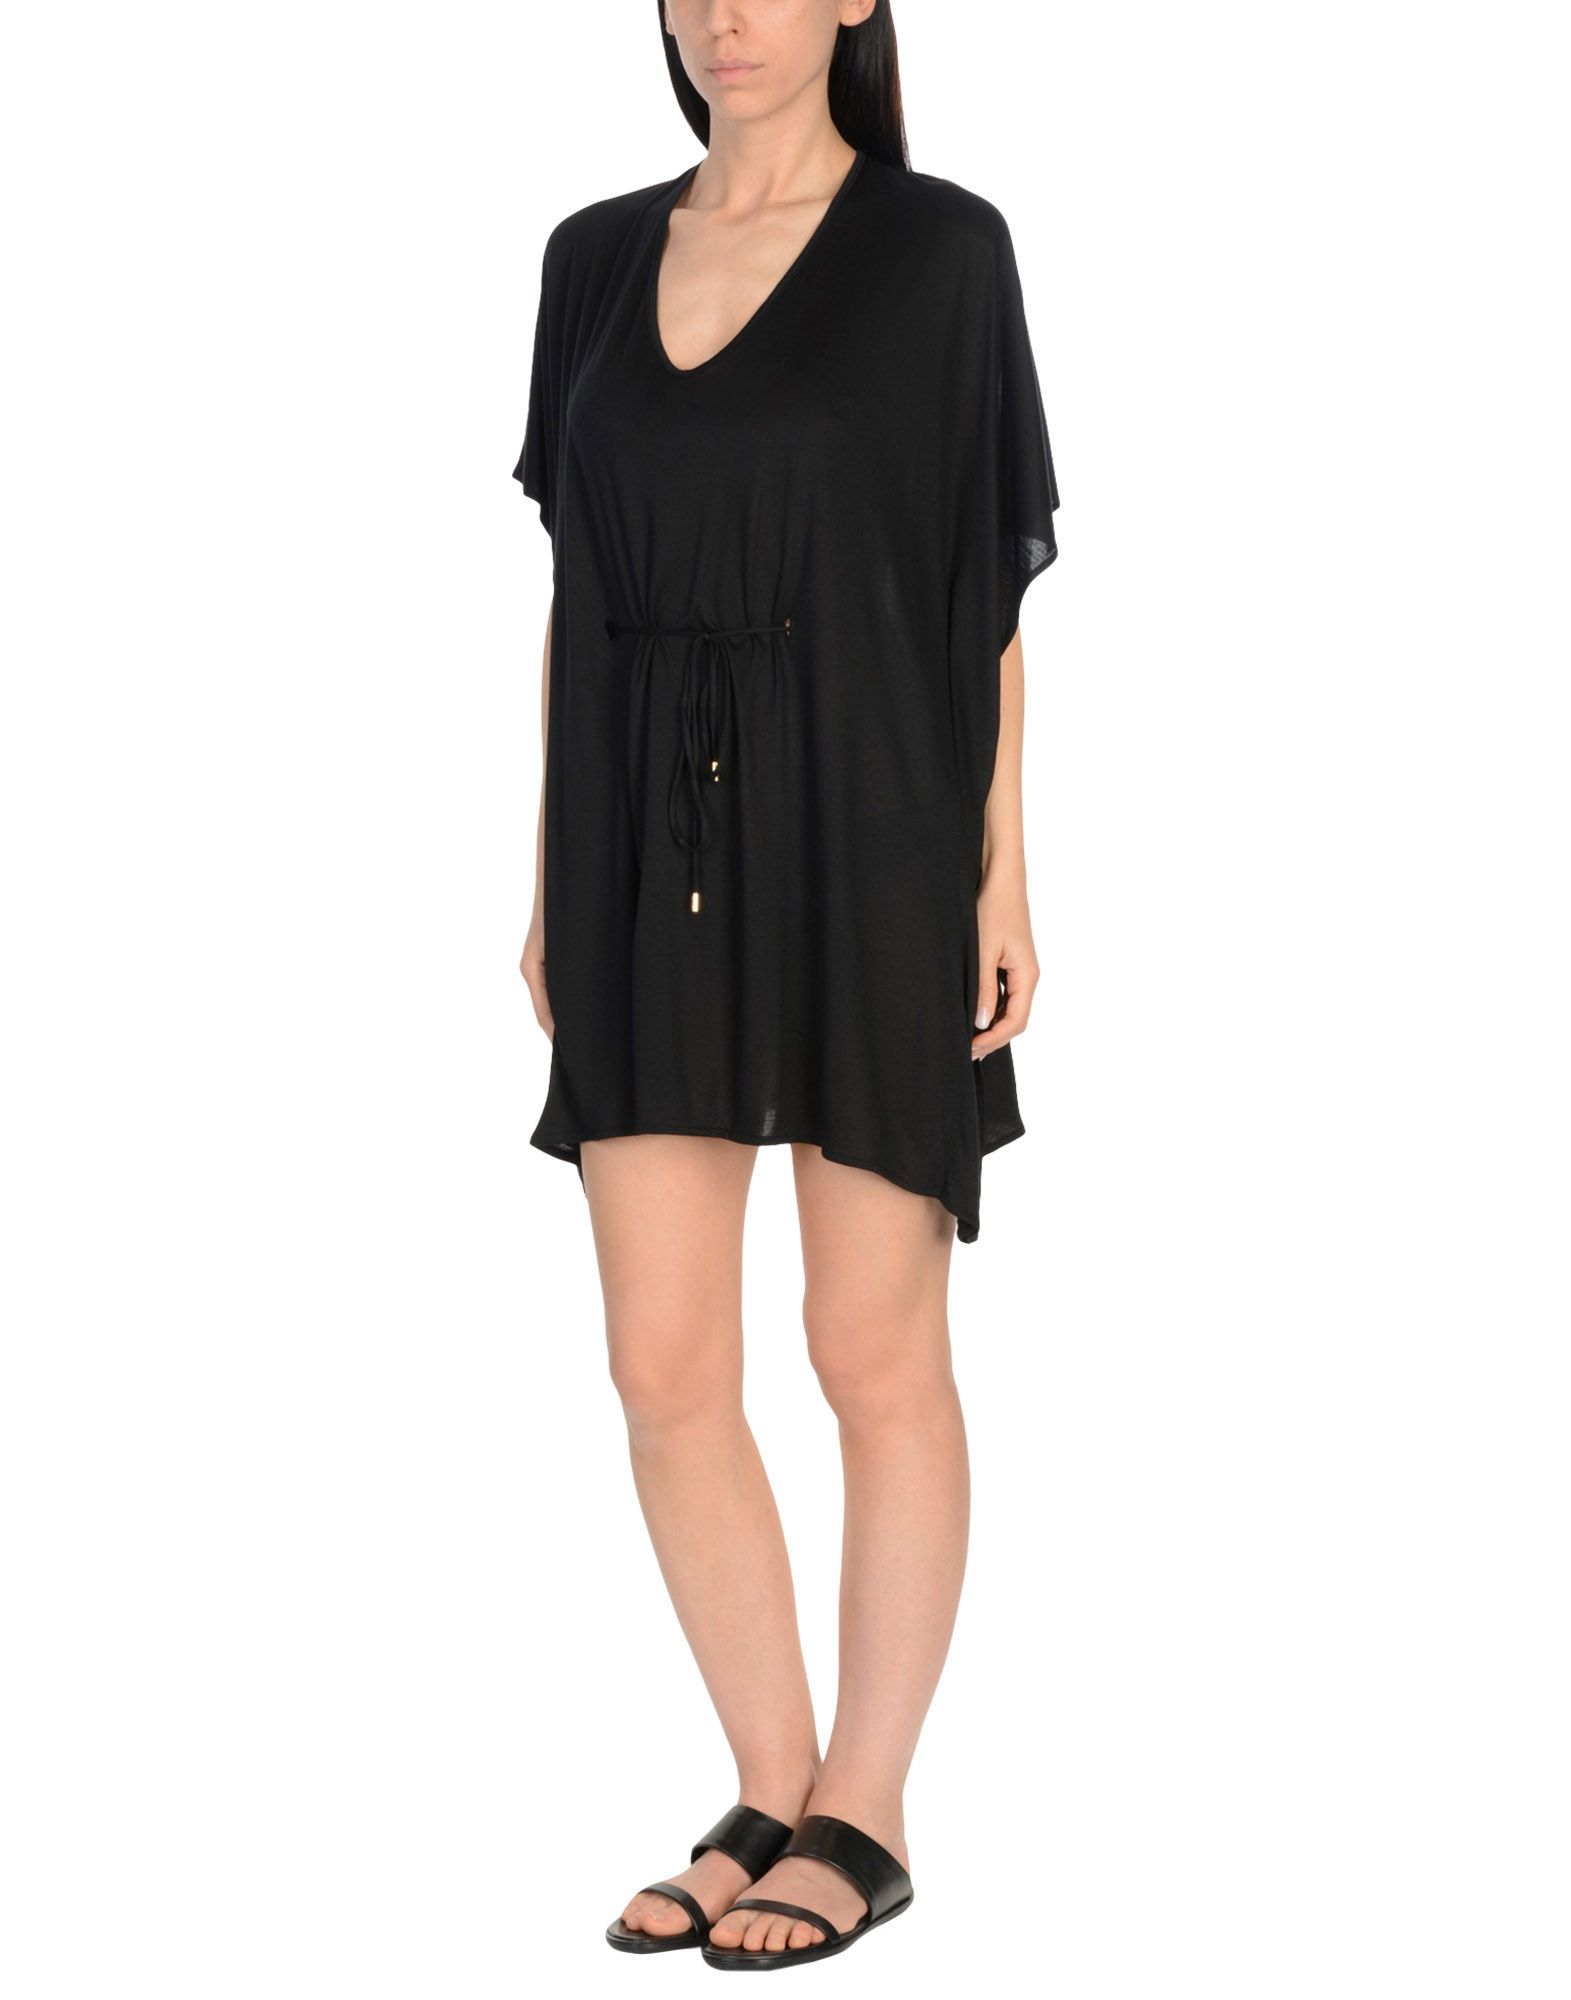 61e7493577 Calvin Klein Cover-Up - Women Calvin Klein Cover-Ups online on YOOX ...